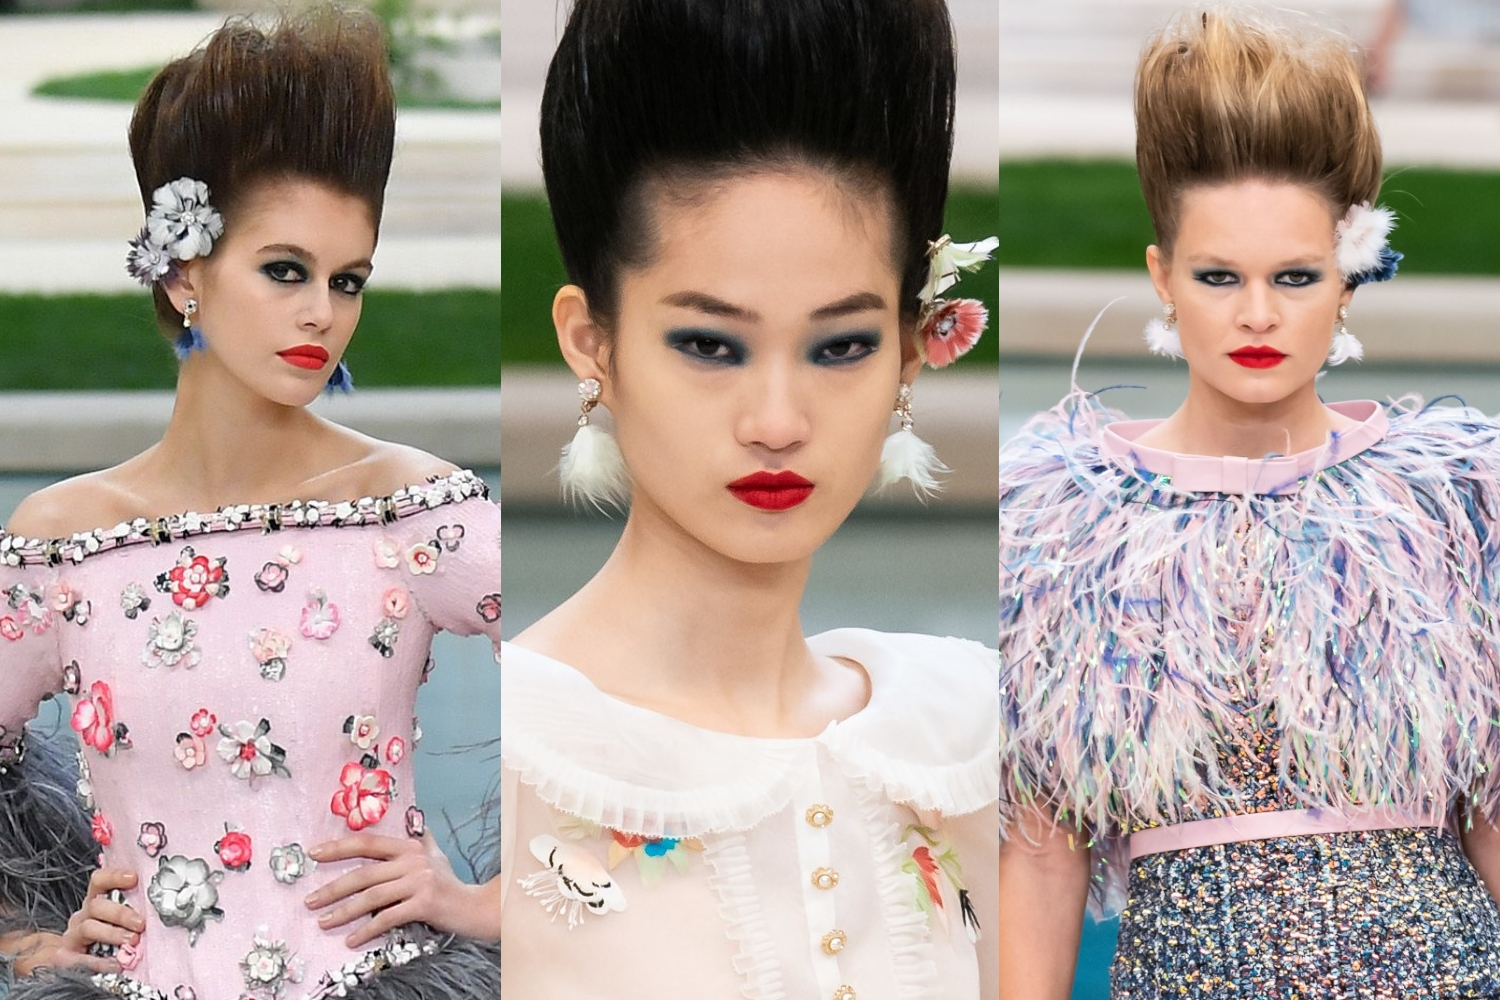 Makeup at The Spring-Summer 2019 Haute Couture Show by Chanel